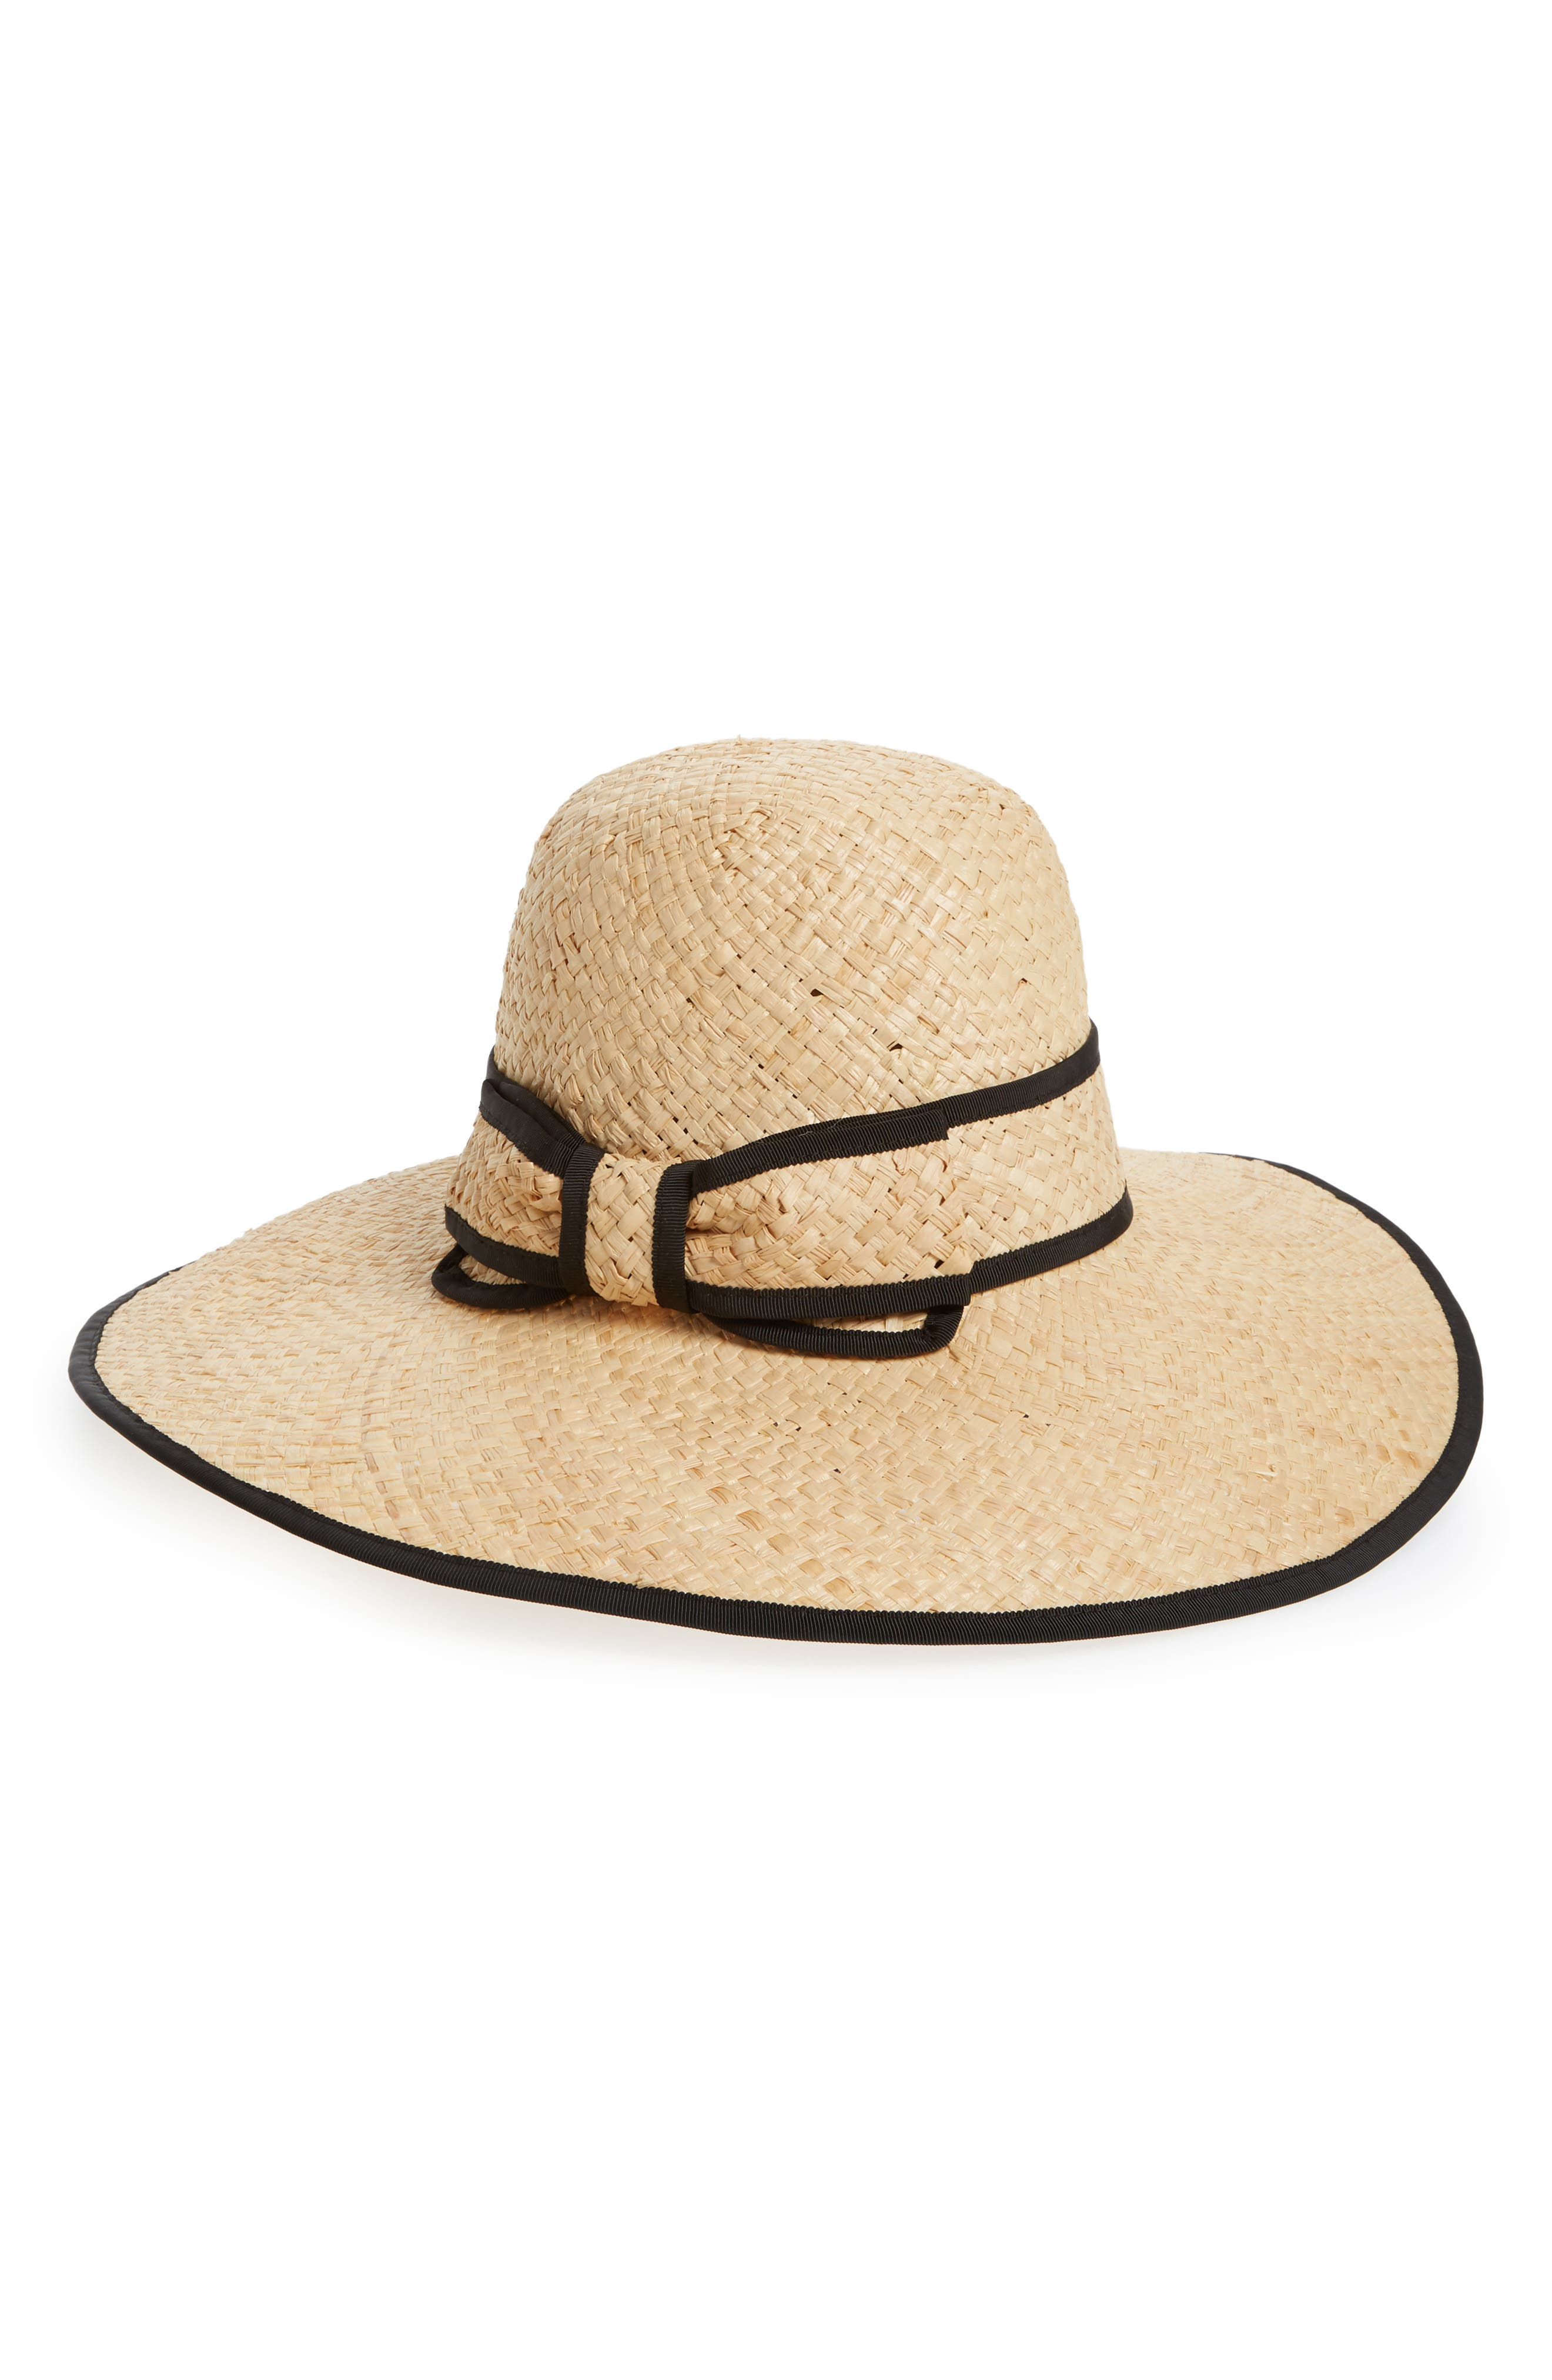 kate spade new york olive drive straw hat